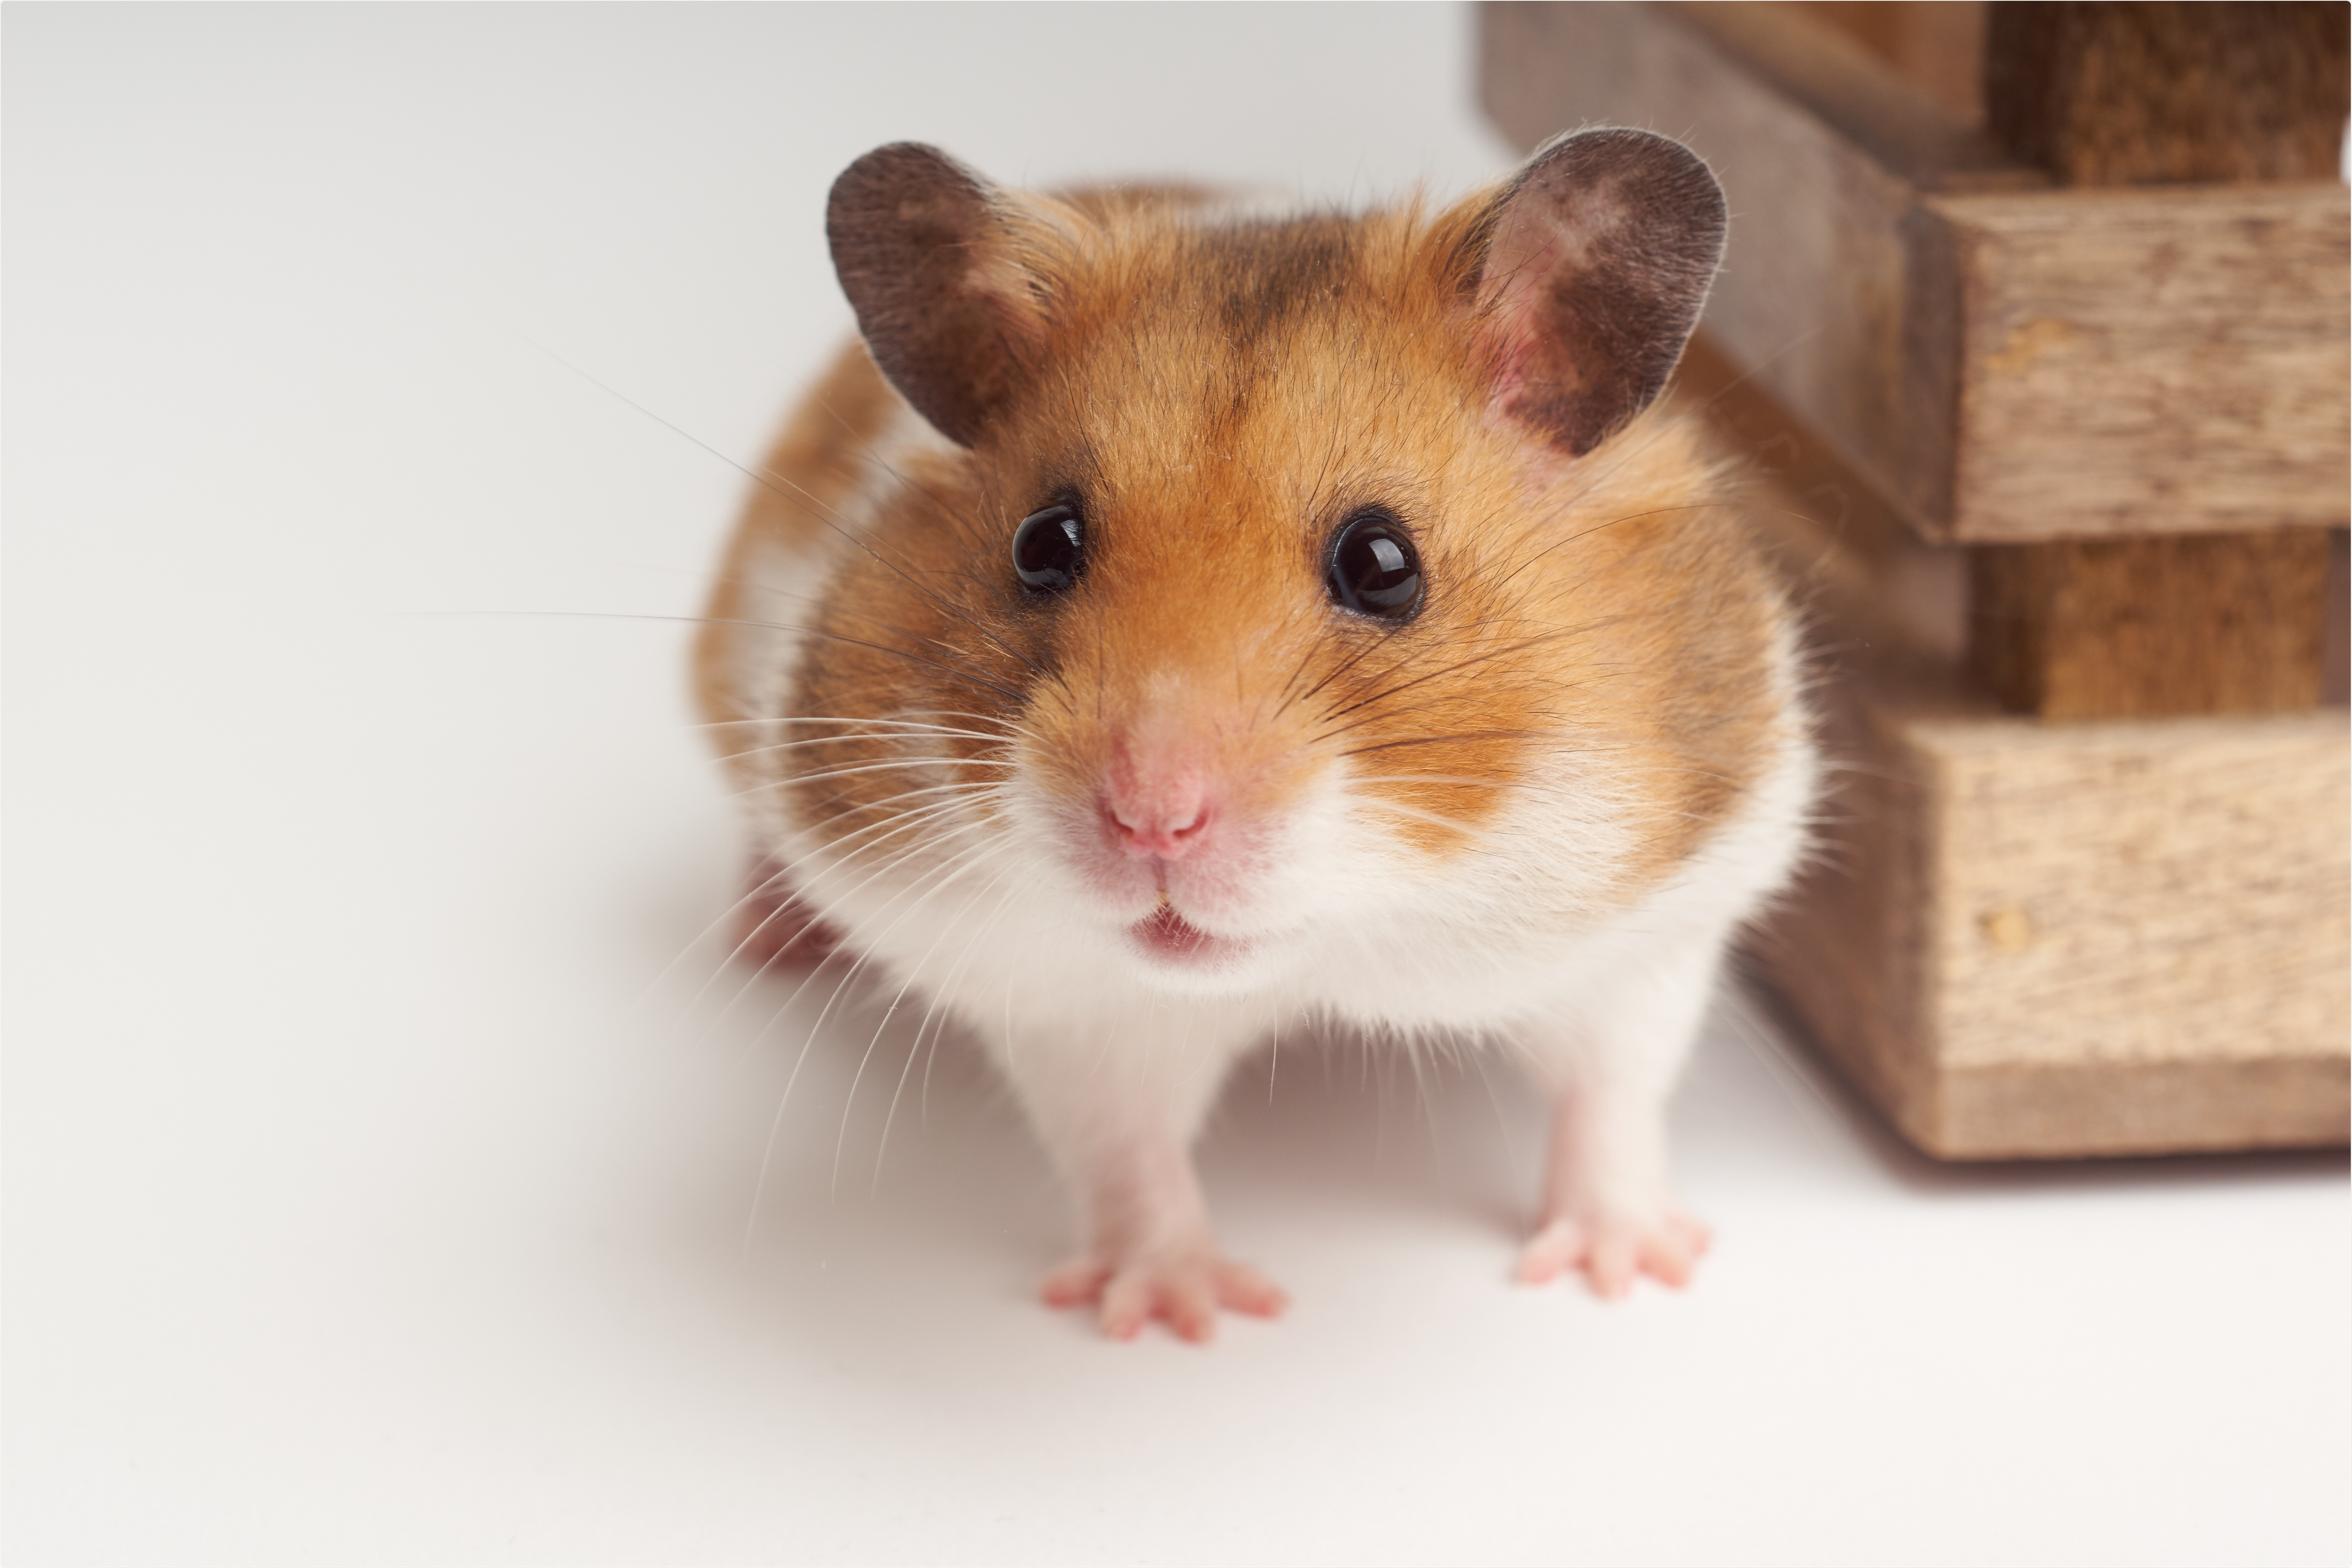 Study: Nafamostat Mesylate in lipid carrier for nasal SARS-CoV2 titer reduction in a hamster model. Image Credit: Johannes Menge / Shutterstock